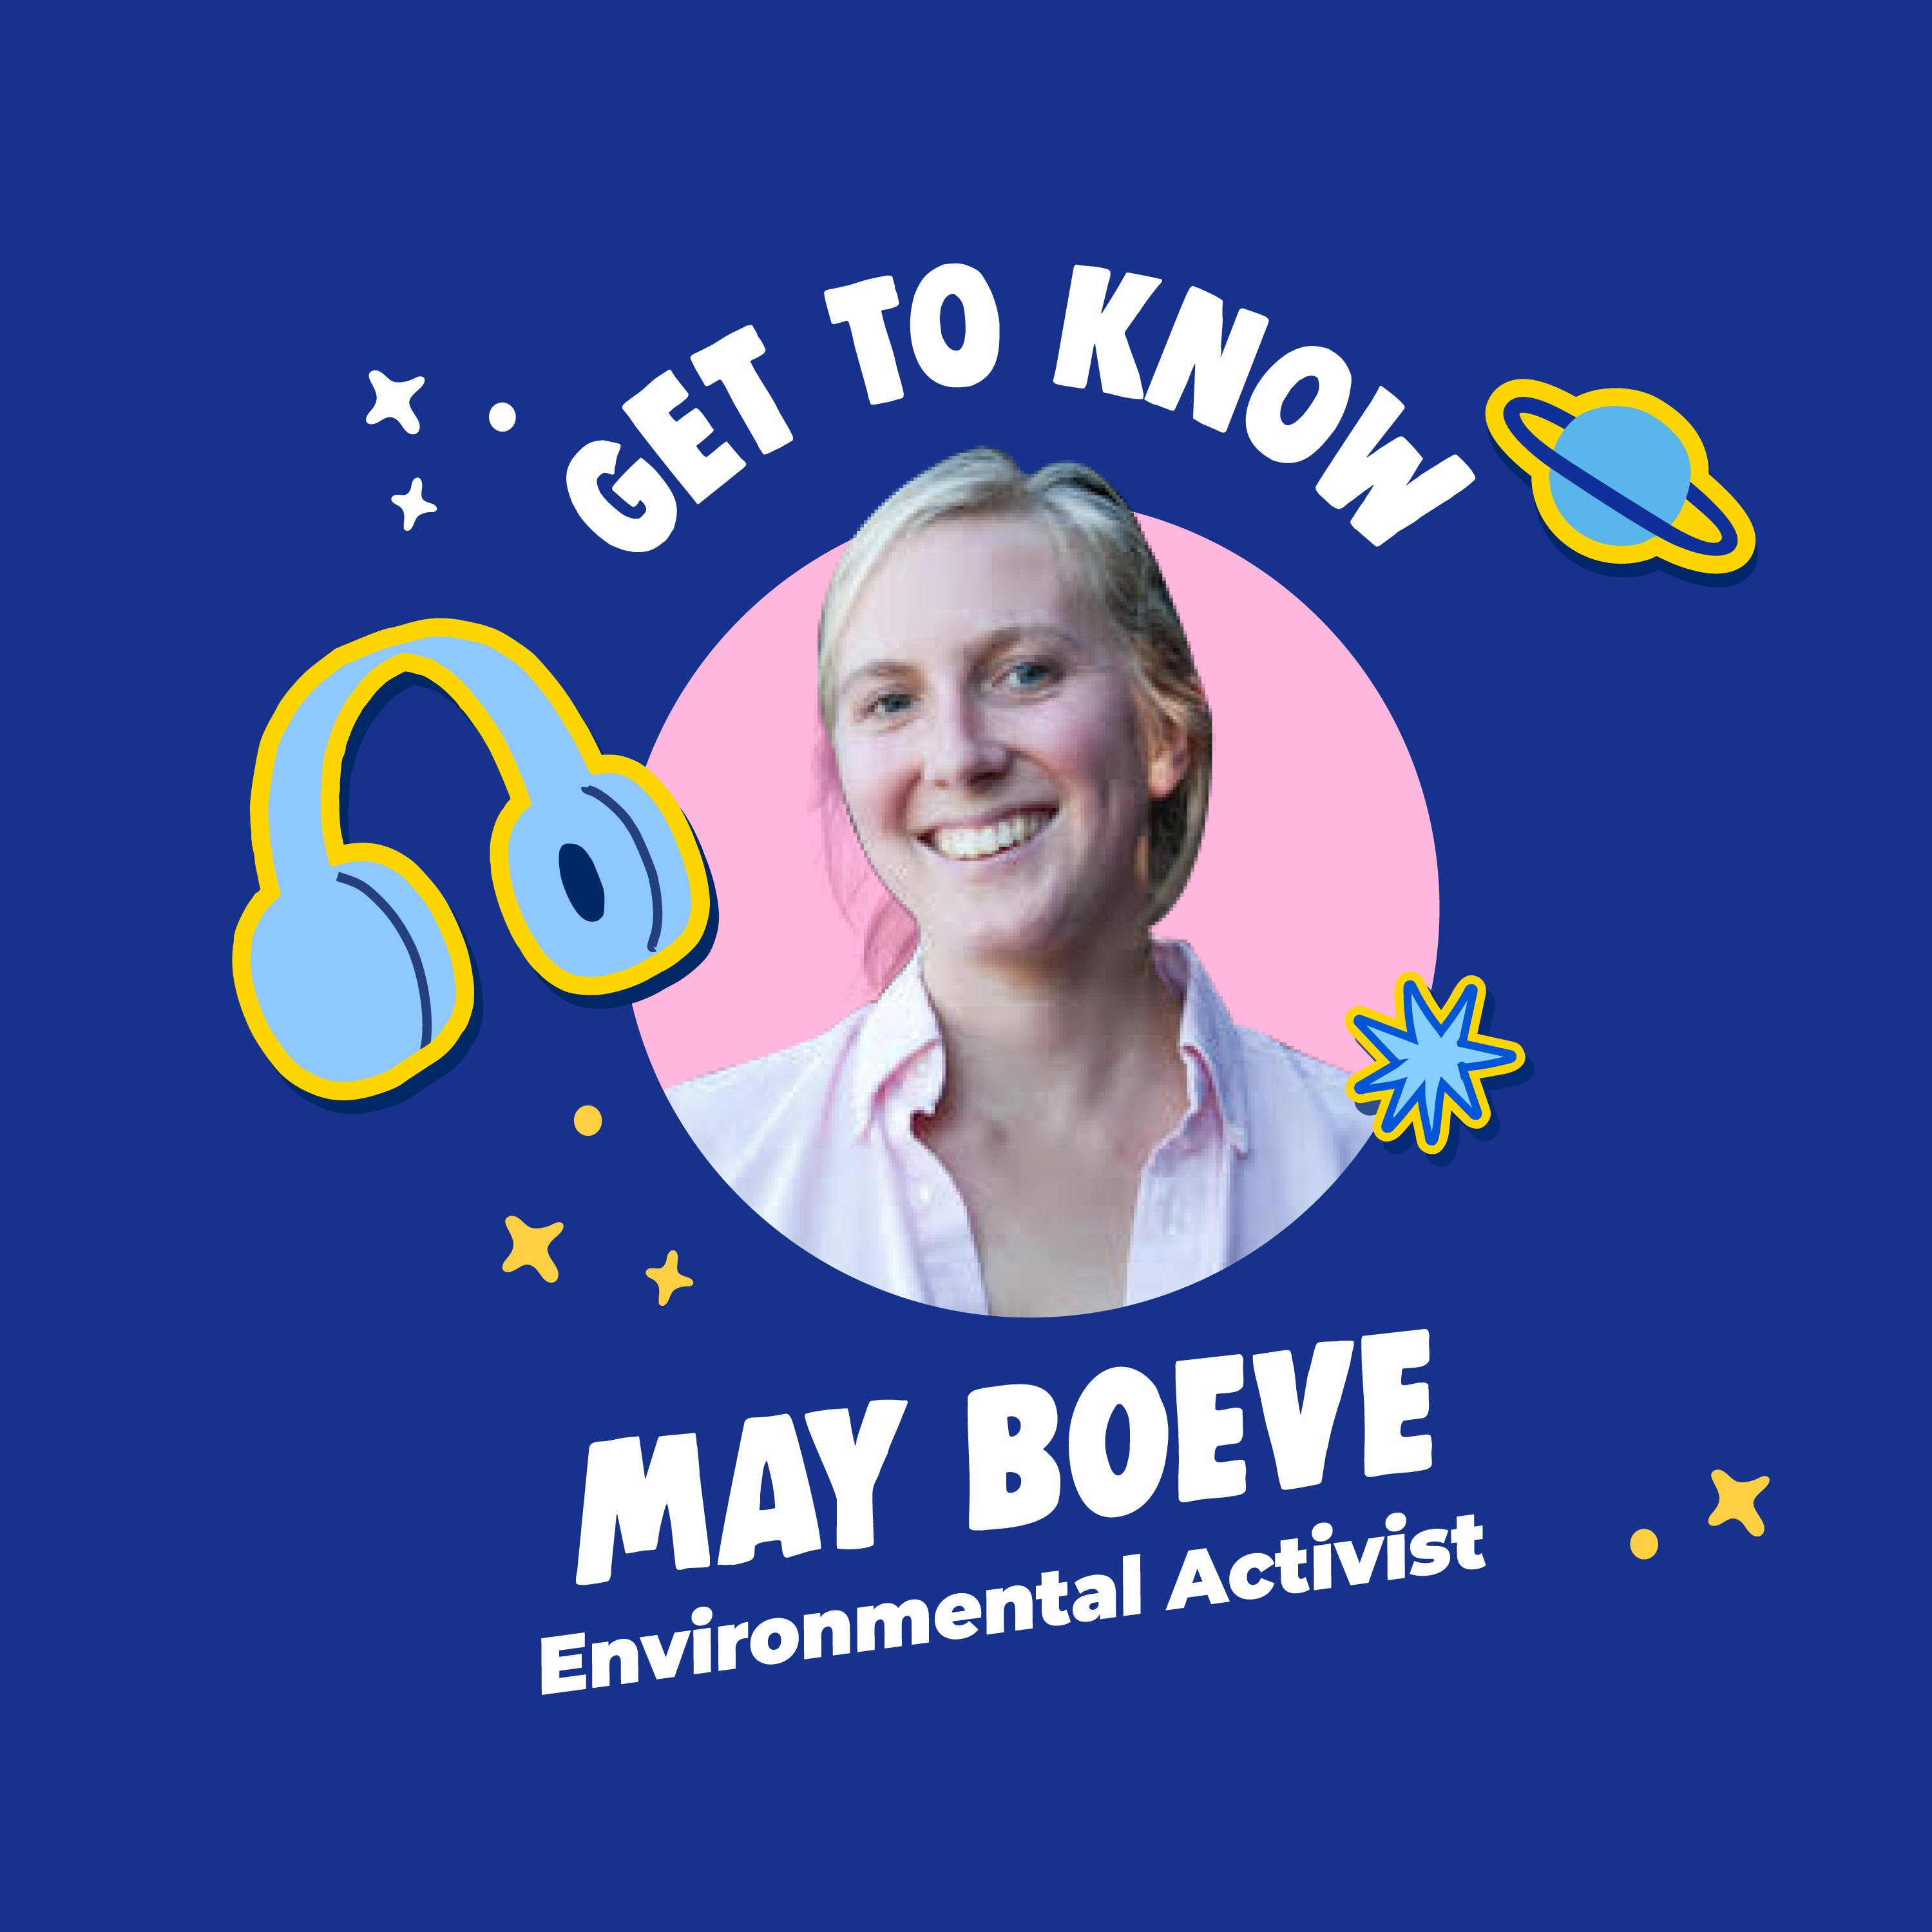 Get To Know May Boeve